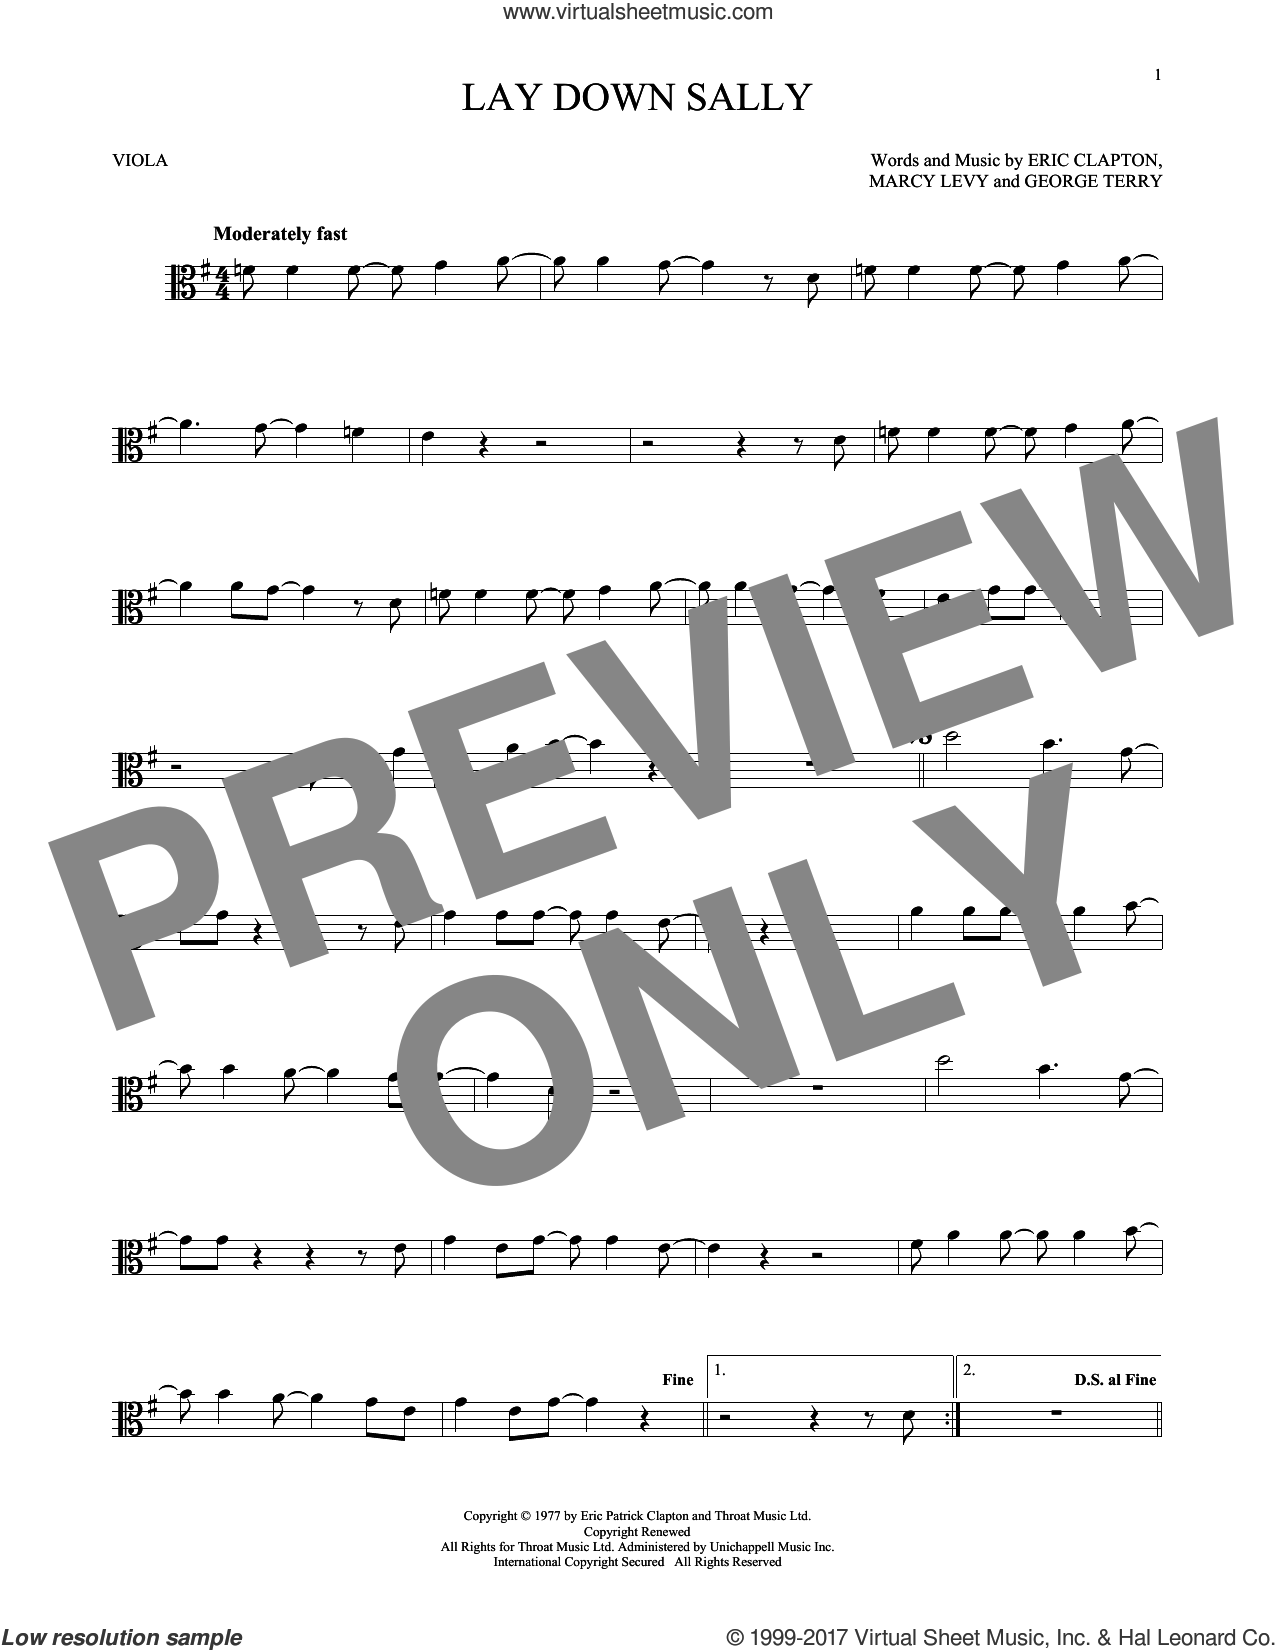 Lay Down Sally sheet music for viola solo by Eric Clapton, George Terry and Marcy Levy, intermediate skill level